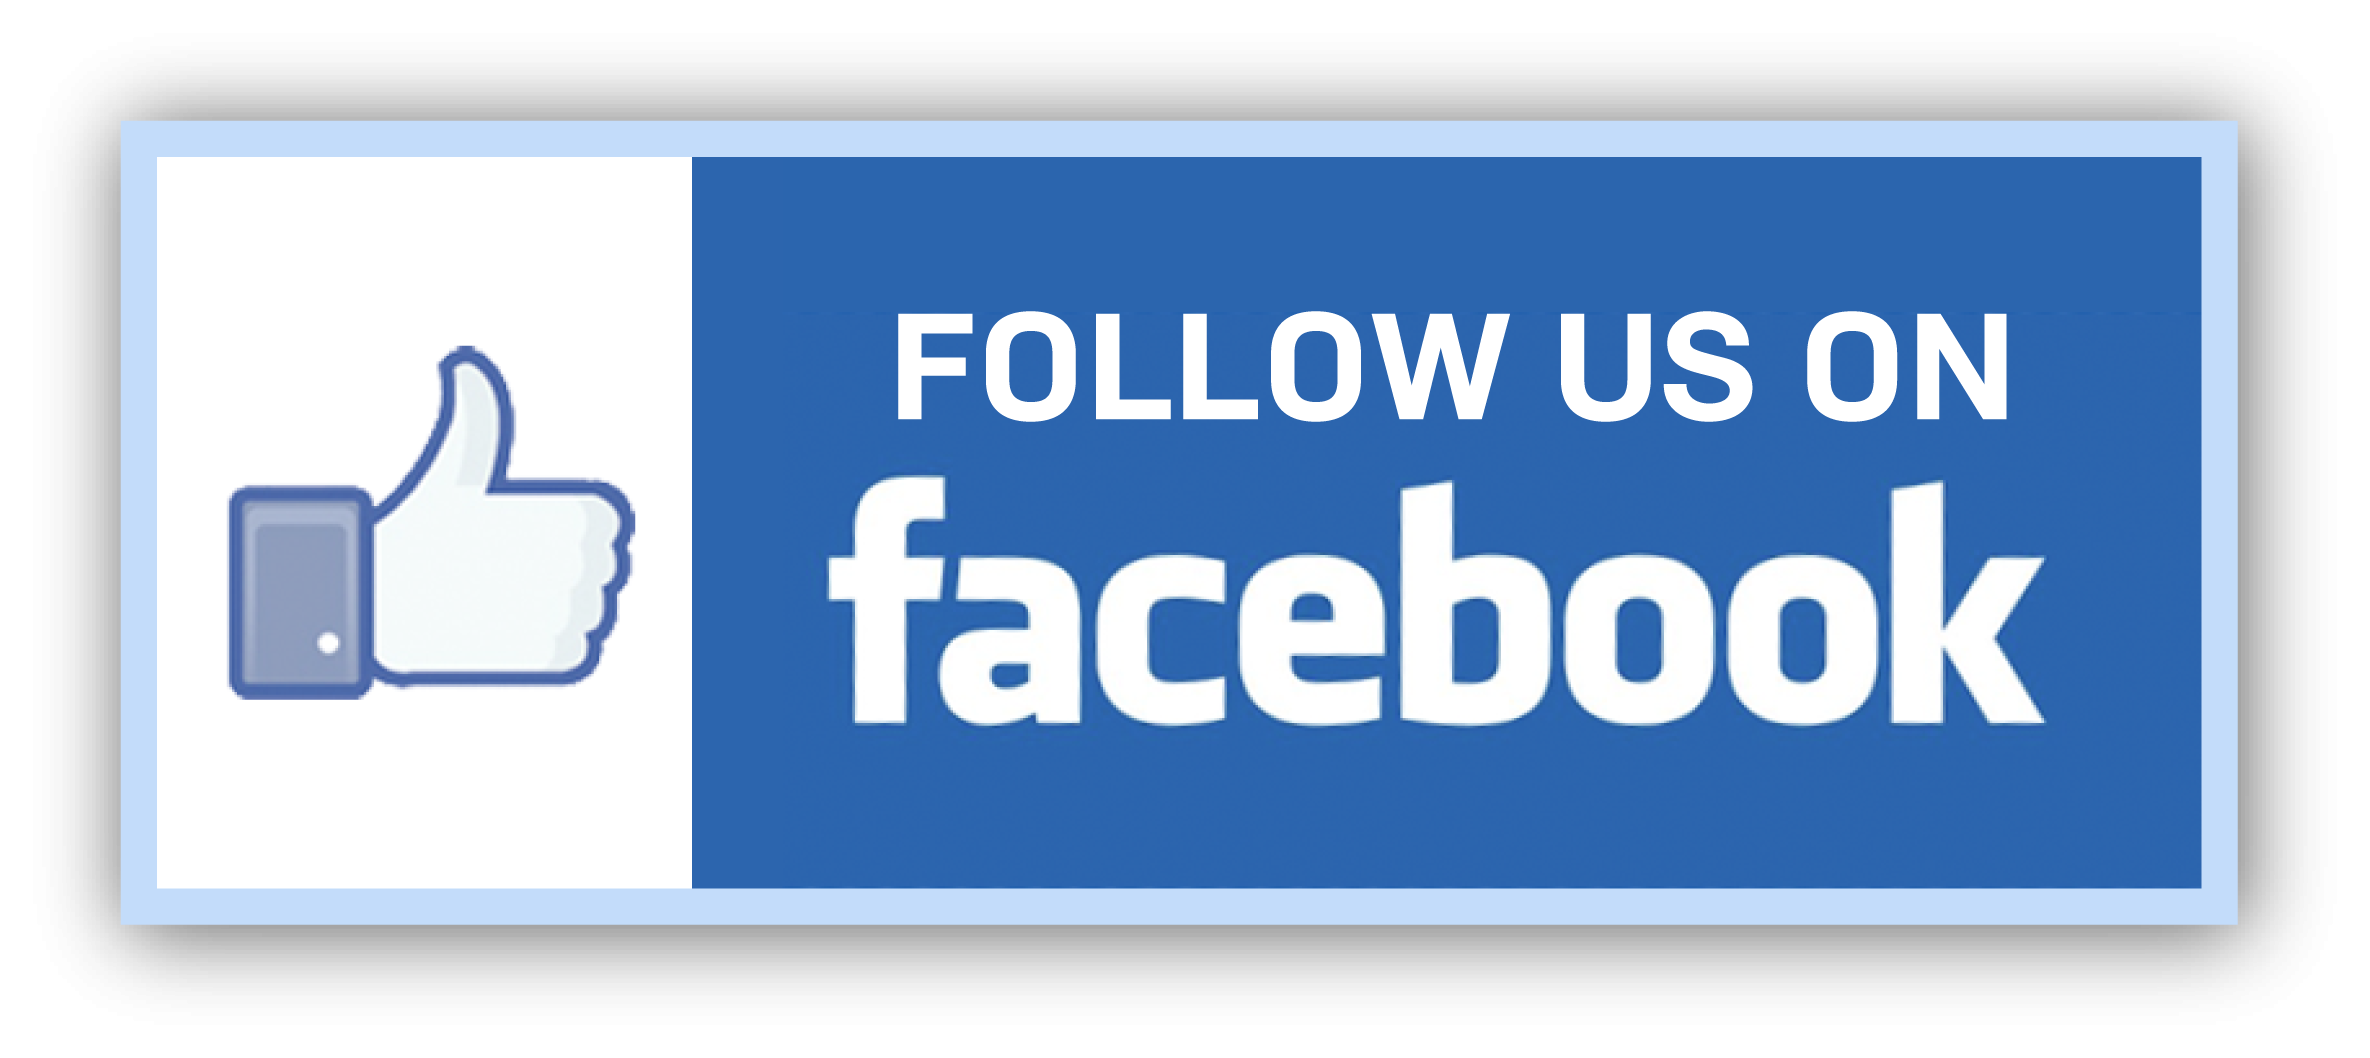 Follow us on facebook icon, linked to the Fort Bend County L.E.P.C facebook page